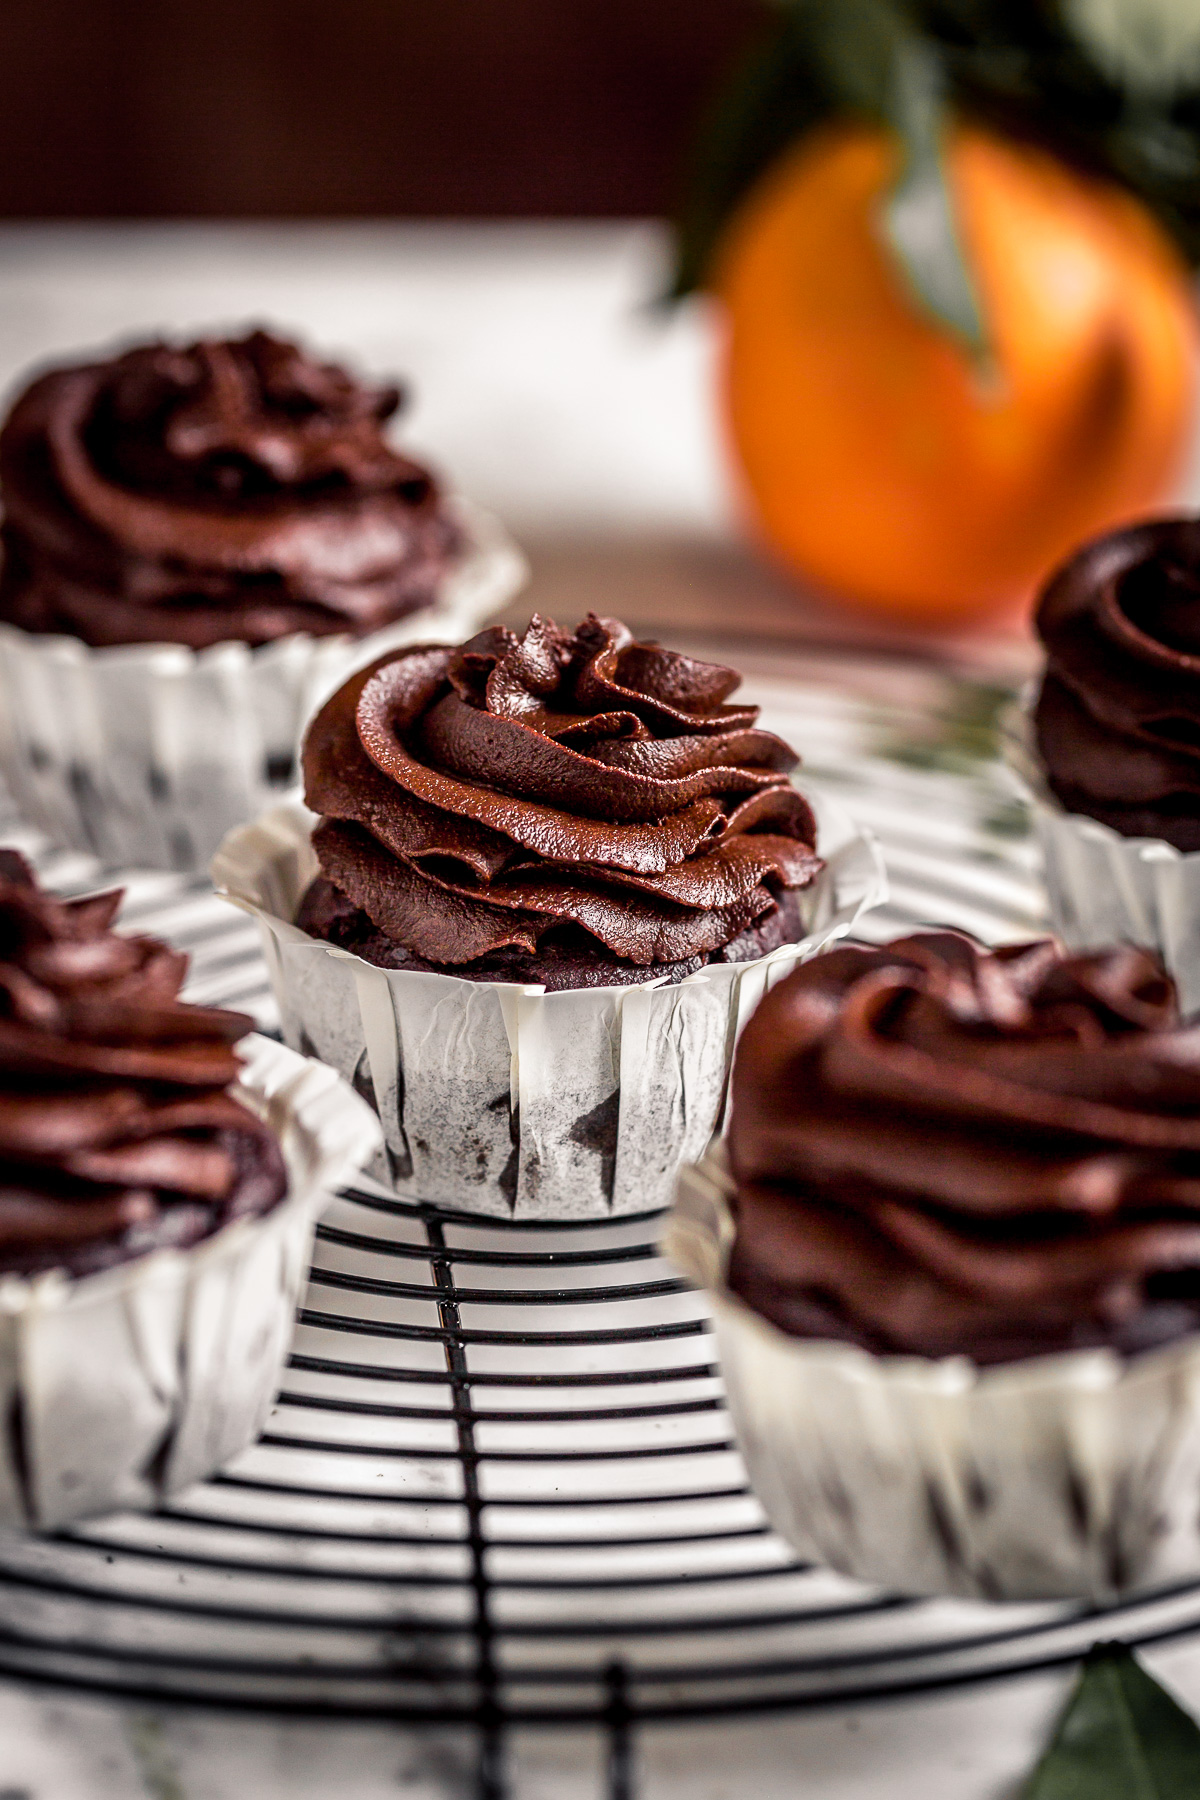 HEALTHY #vegan chocolate pumpkin cupcakes with orange and date chocolate frosting CUPCAKES VEGAN al CIOCCOLATO ARANCIA e ZUCCA con mousse al cioccolato datteri e zucca senza zucchero